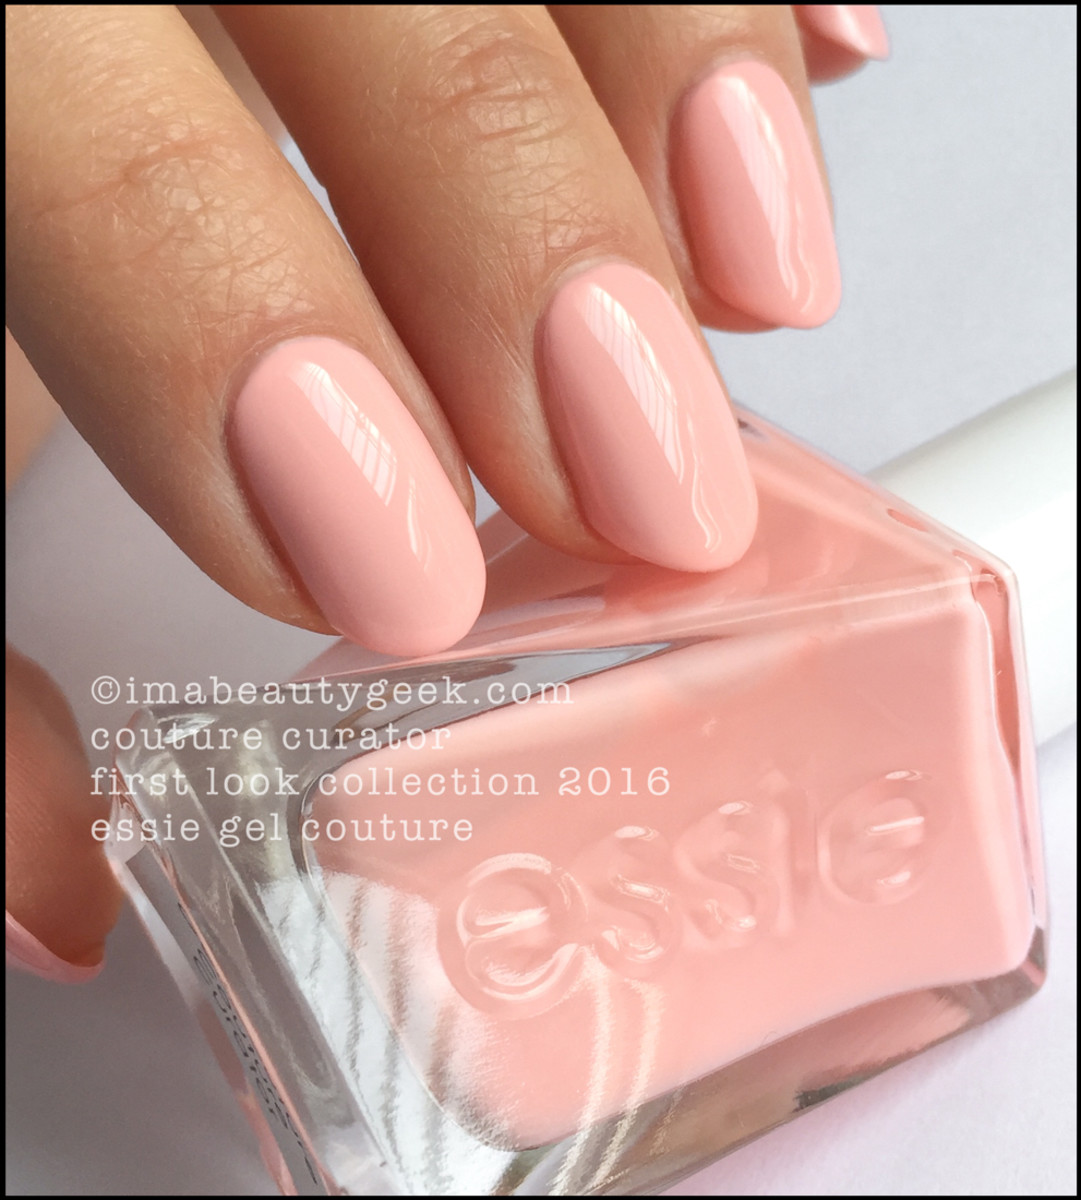 Essie Gel Couture Swatches Review Curator